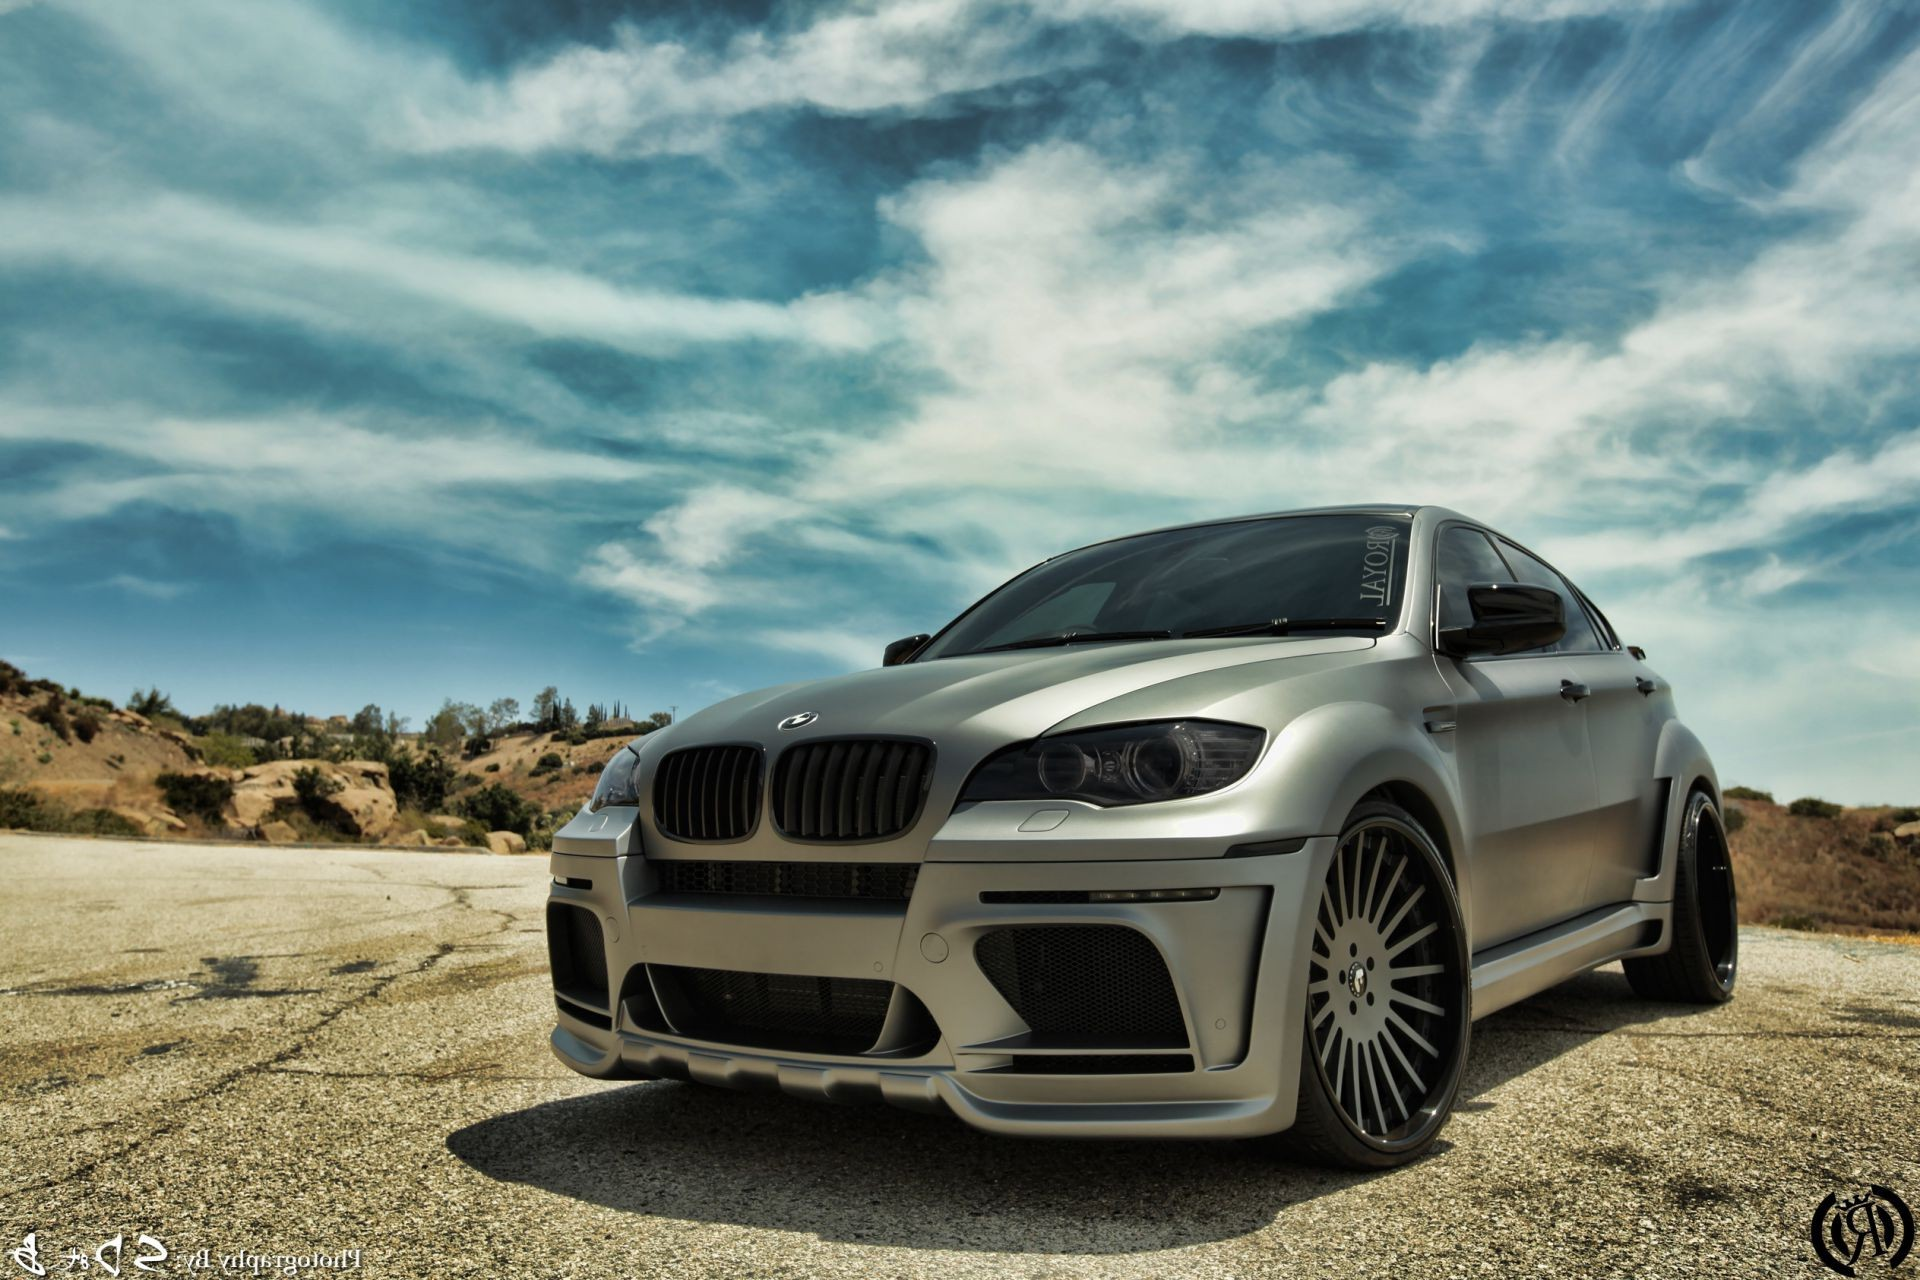 sun clouds BMW tuning Bmw x6 awesome sky road